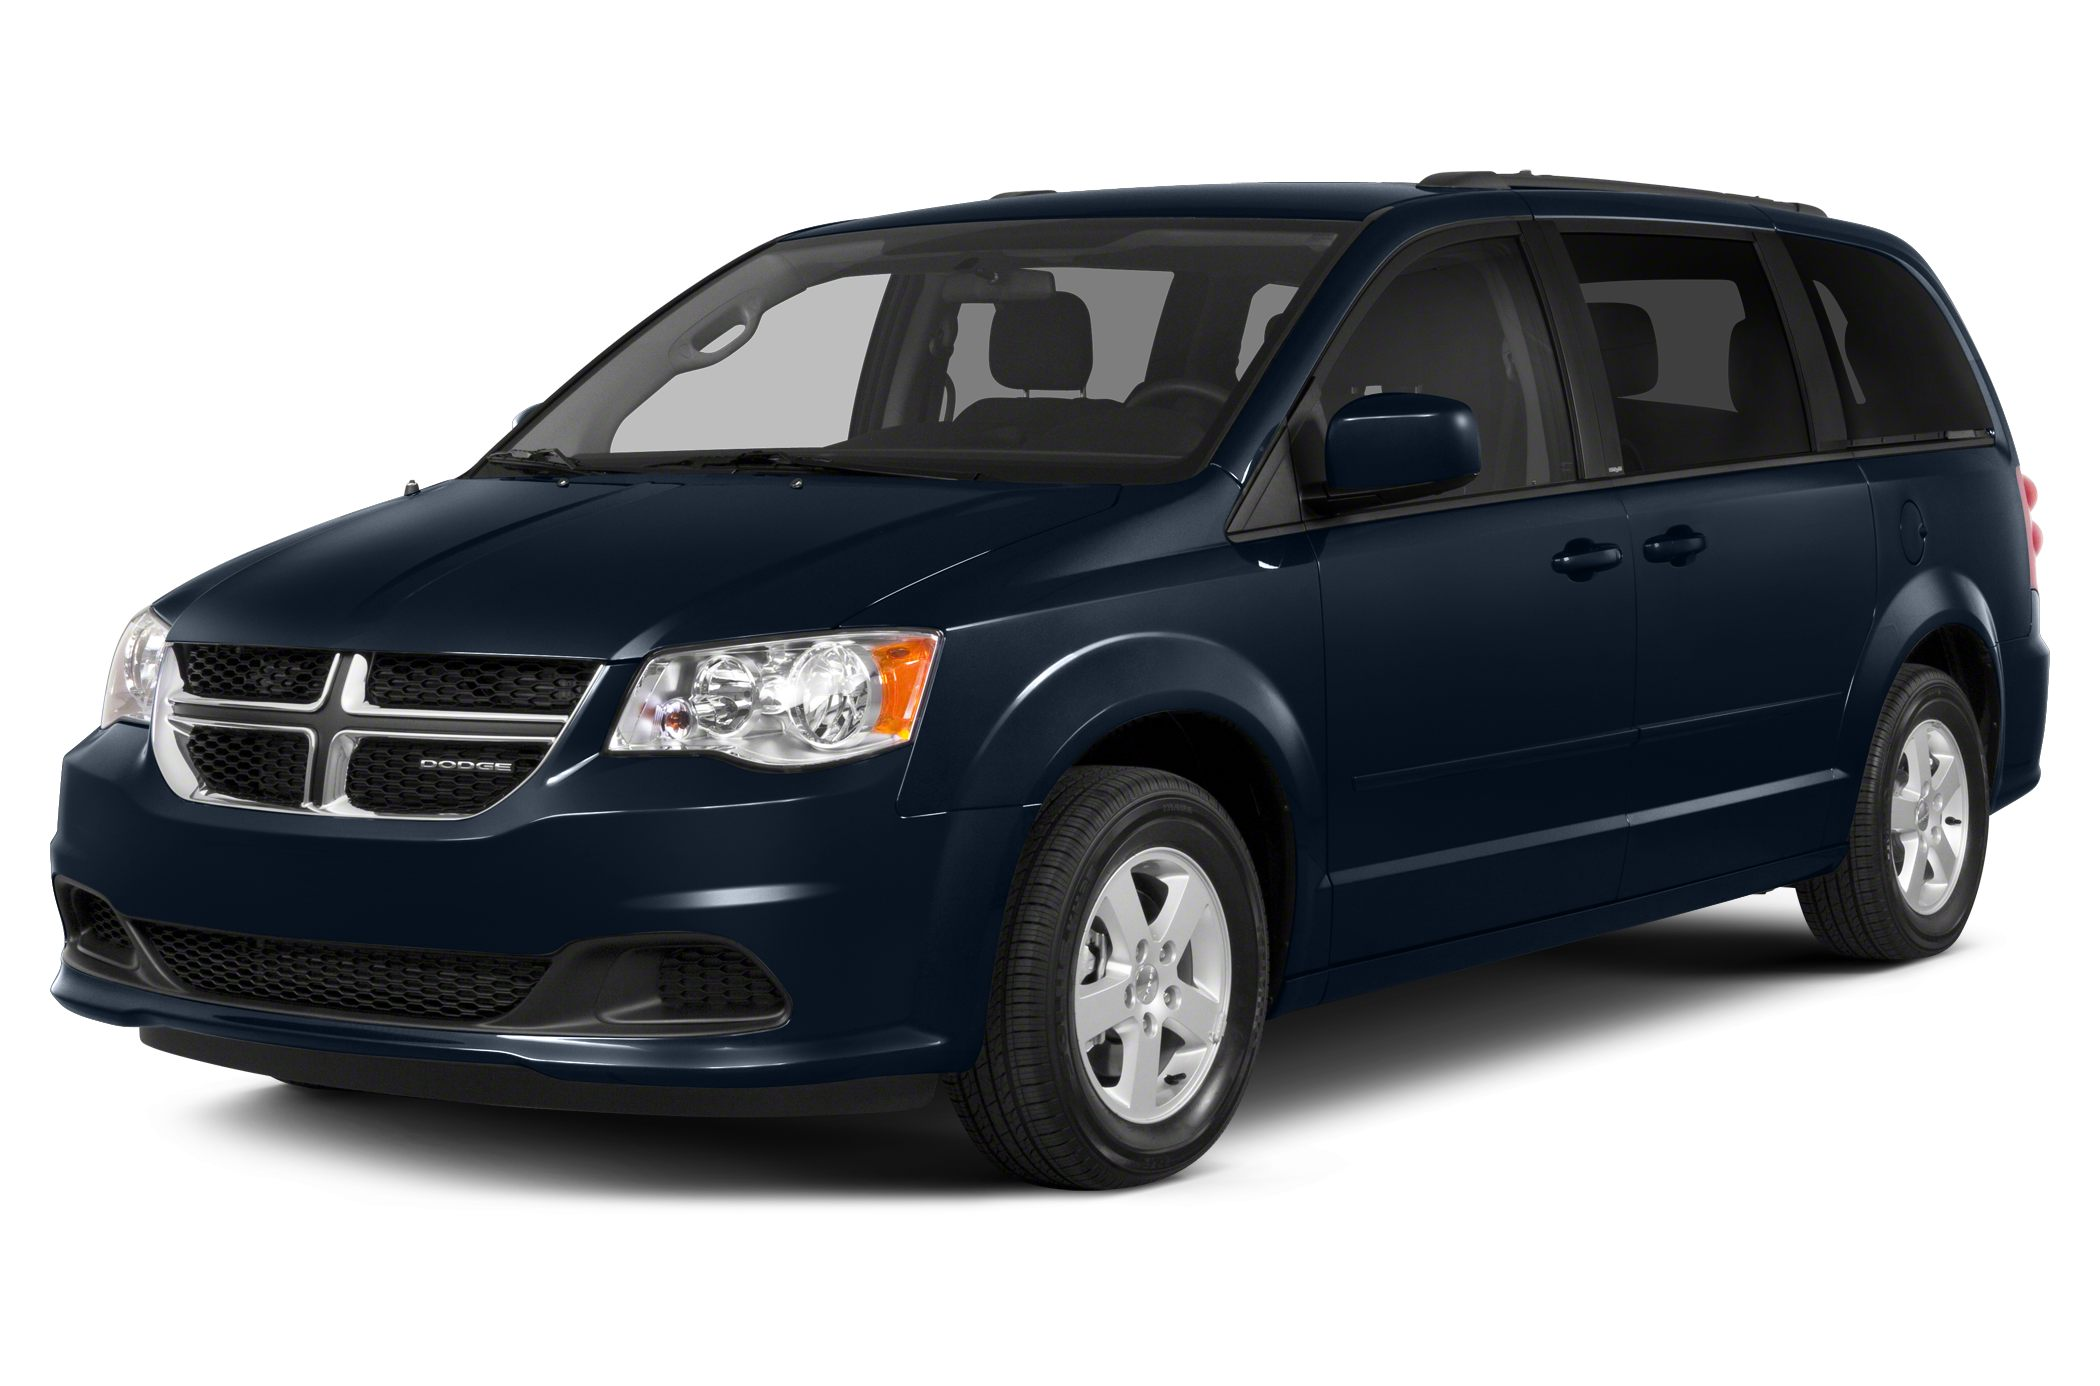 2015 Dodge Grand Caravan AVP/SE Minivan for sale in Webster for $20,940 with 3 miles.